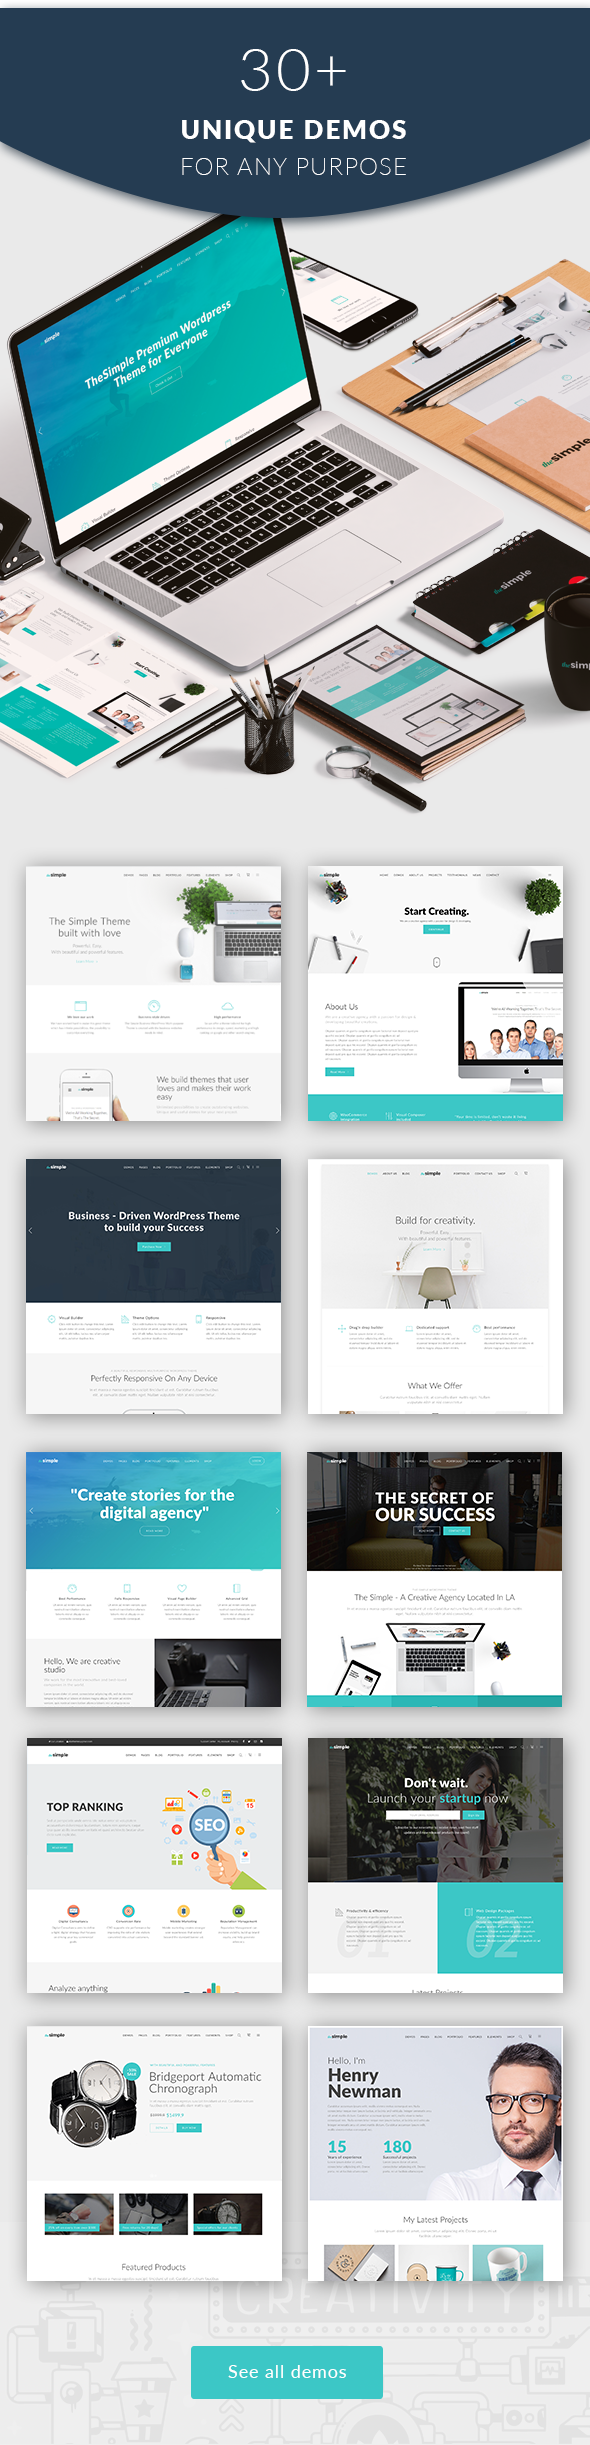 The Simple - Business WordPress Theme - 5